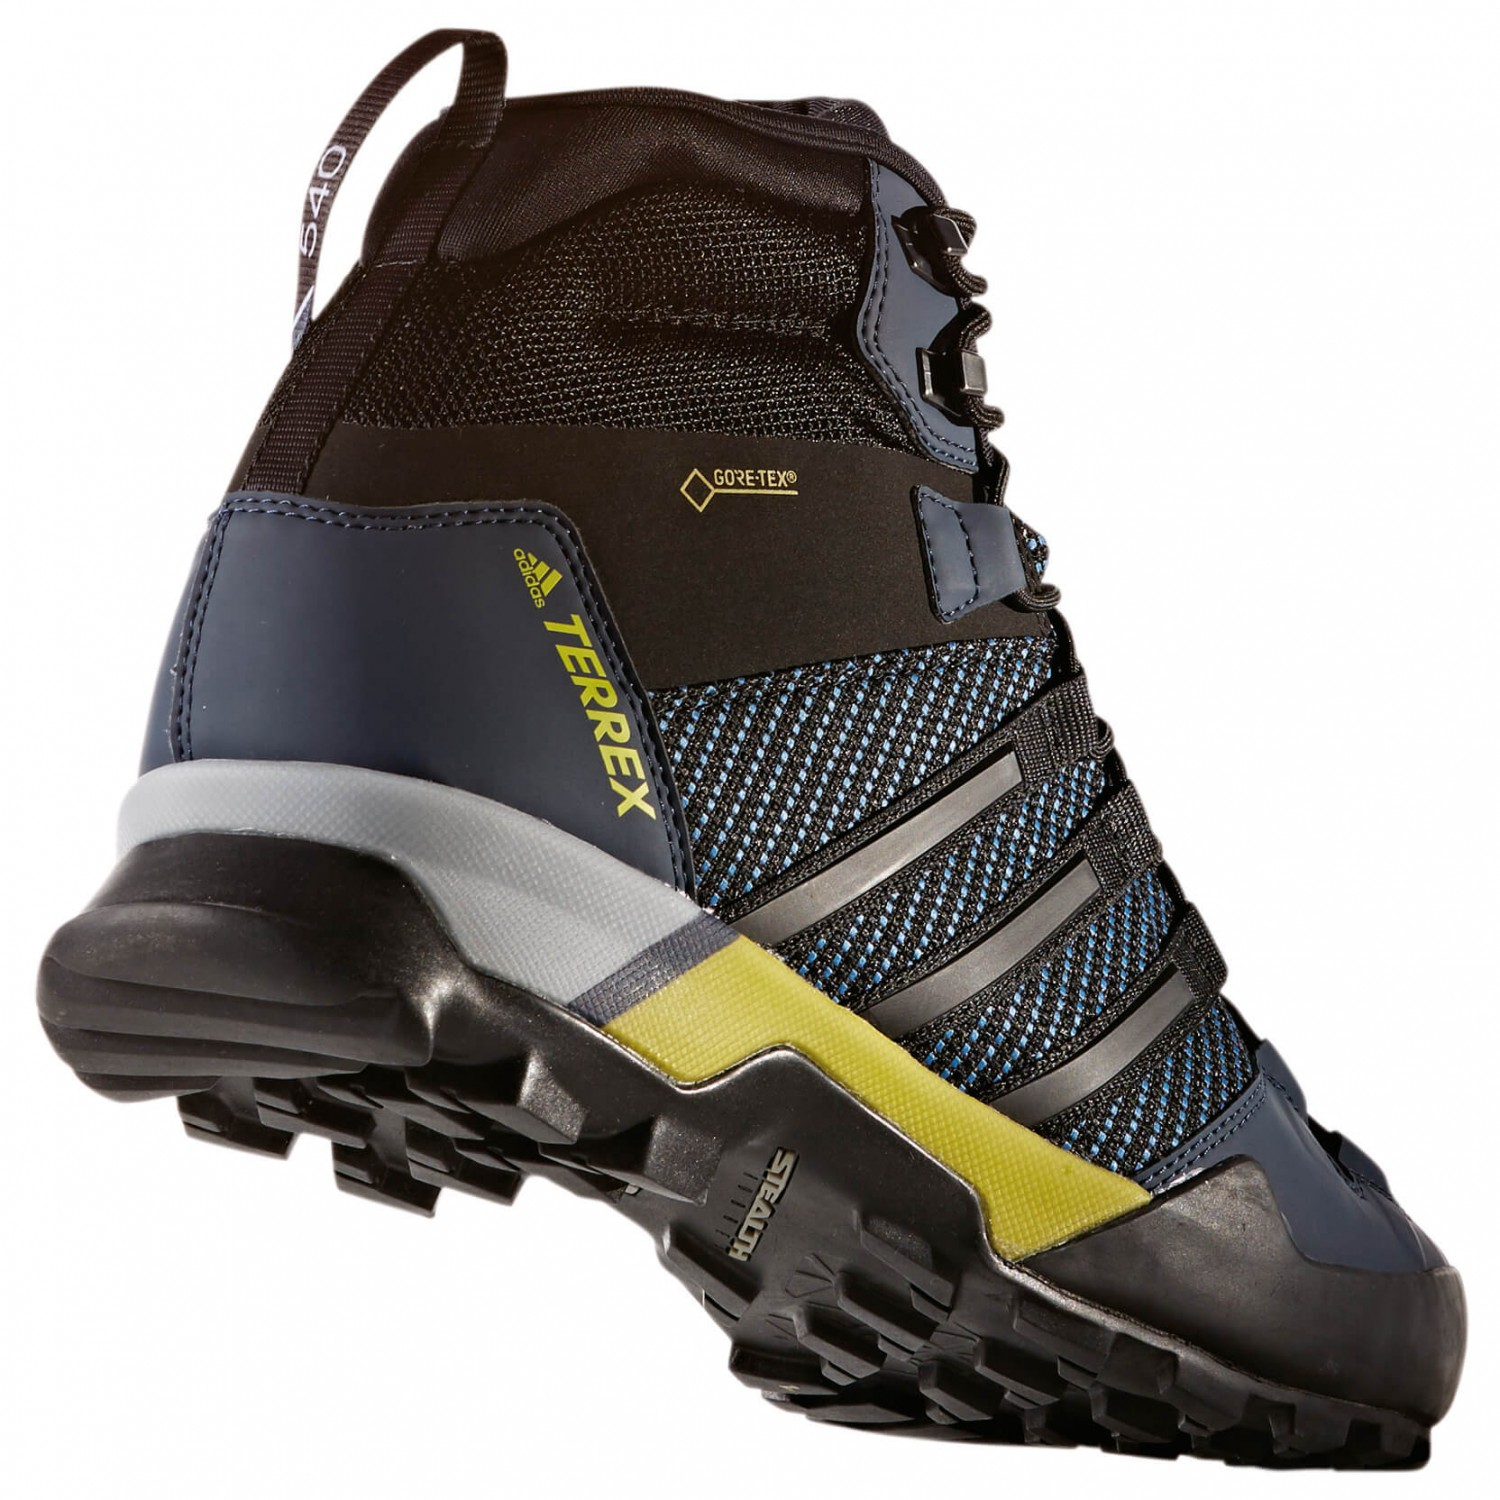 Terrex Scope GTX adidas High Approachschuhe 0wPNk8OnX